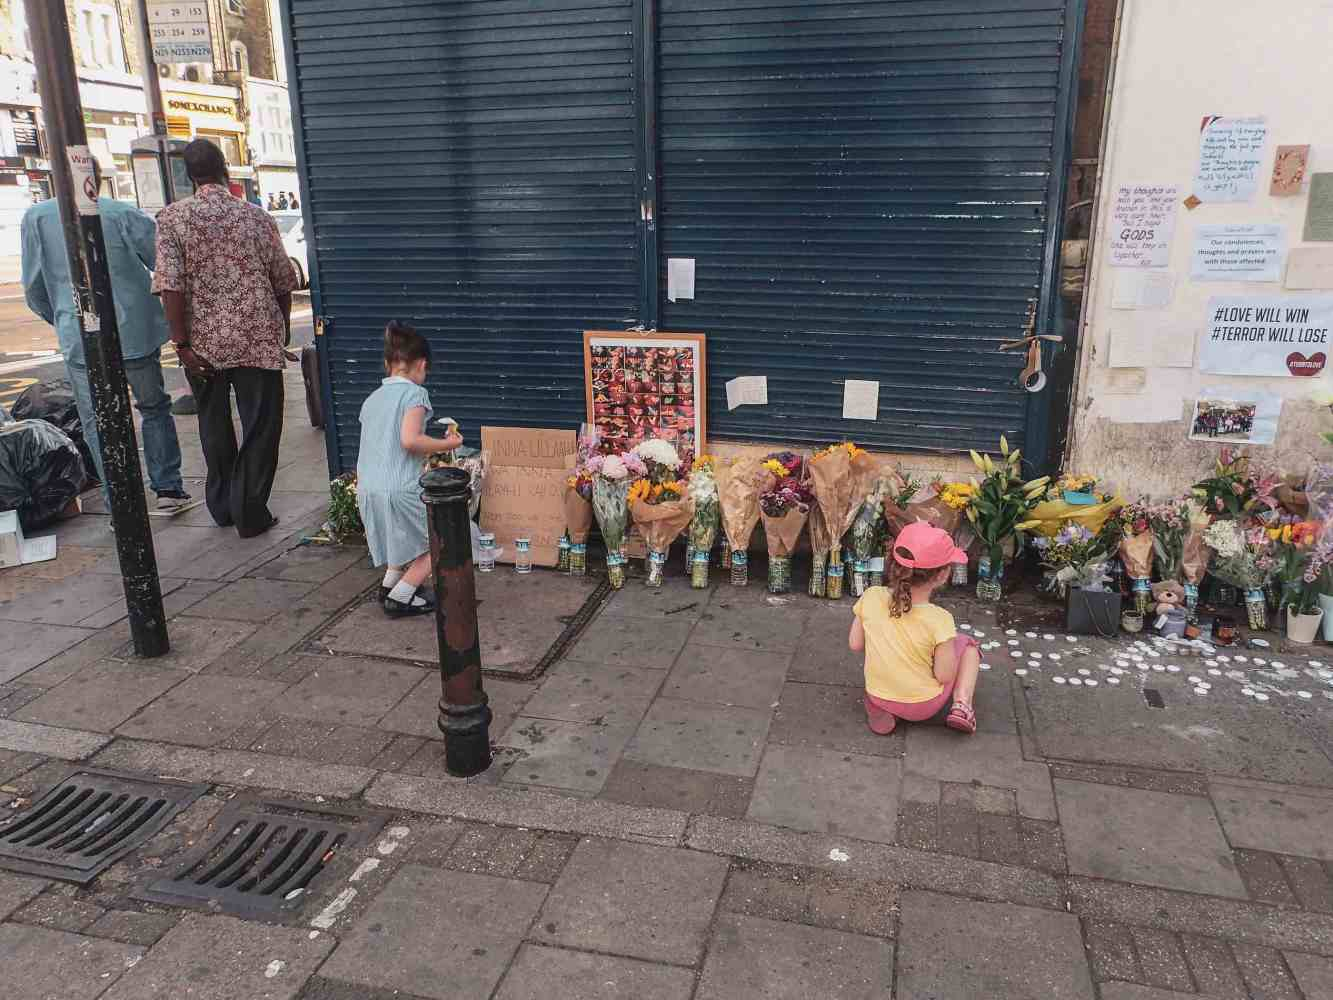 Finsbury Mosque Attack memorial. London, June 2017.